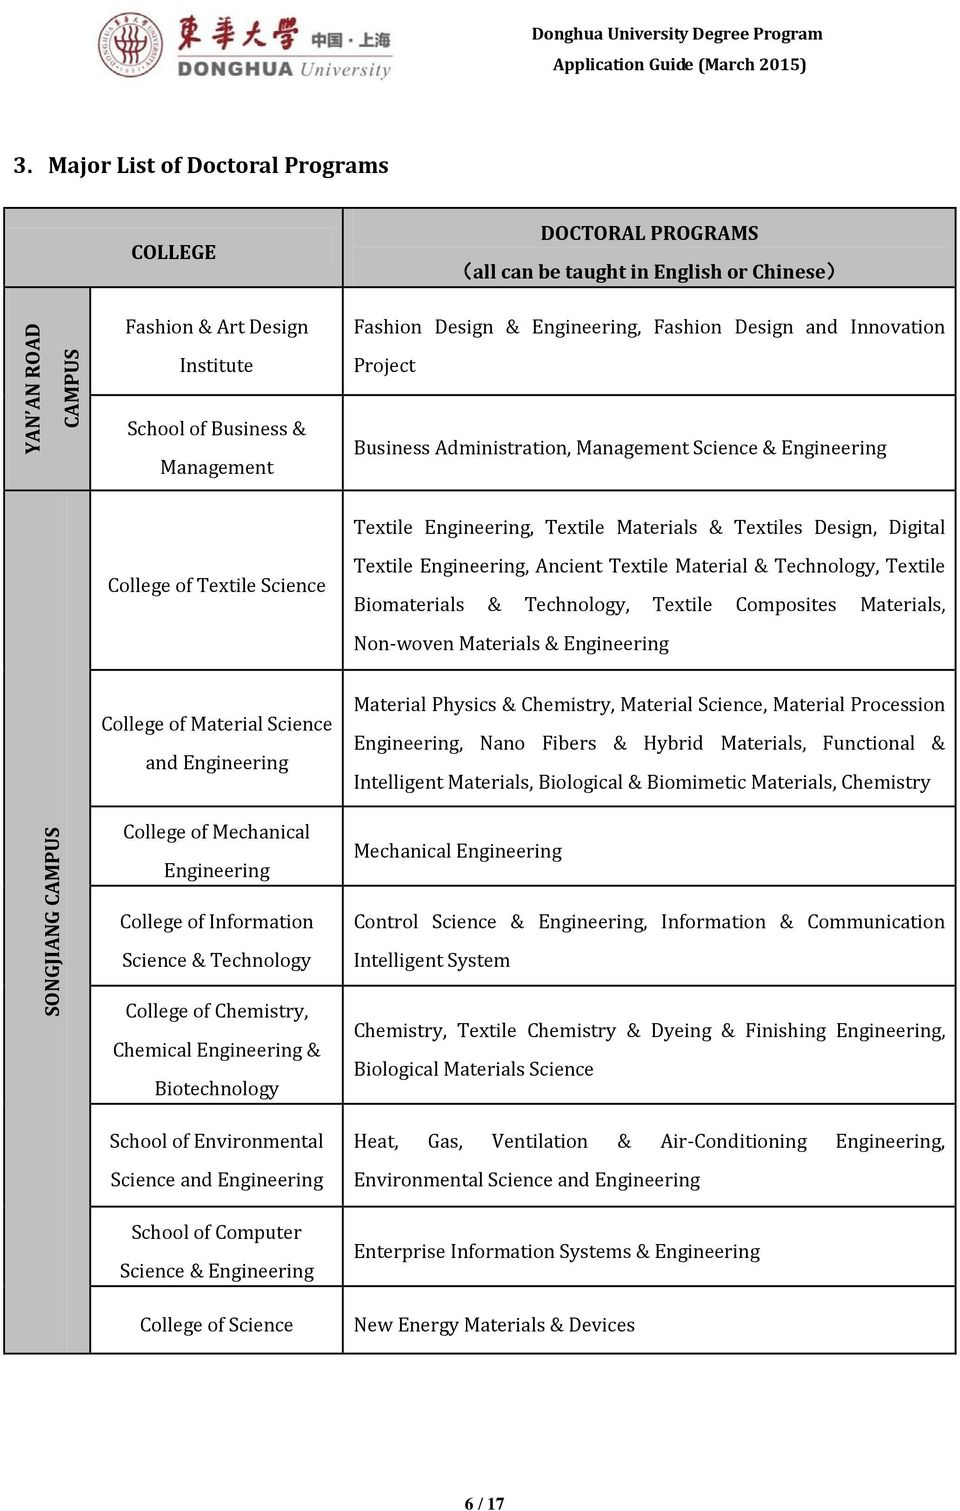 Science Textile Engineering, Ancient Textile Material & Technology, Textile Biomaterials & Technology, Textile Composites Materials, Non-woven Materials & Engineering College of Material Science and